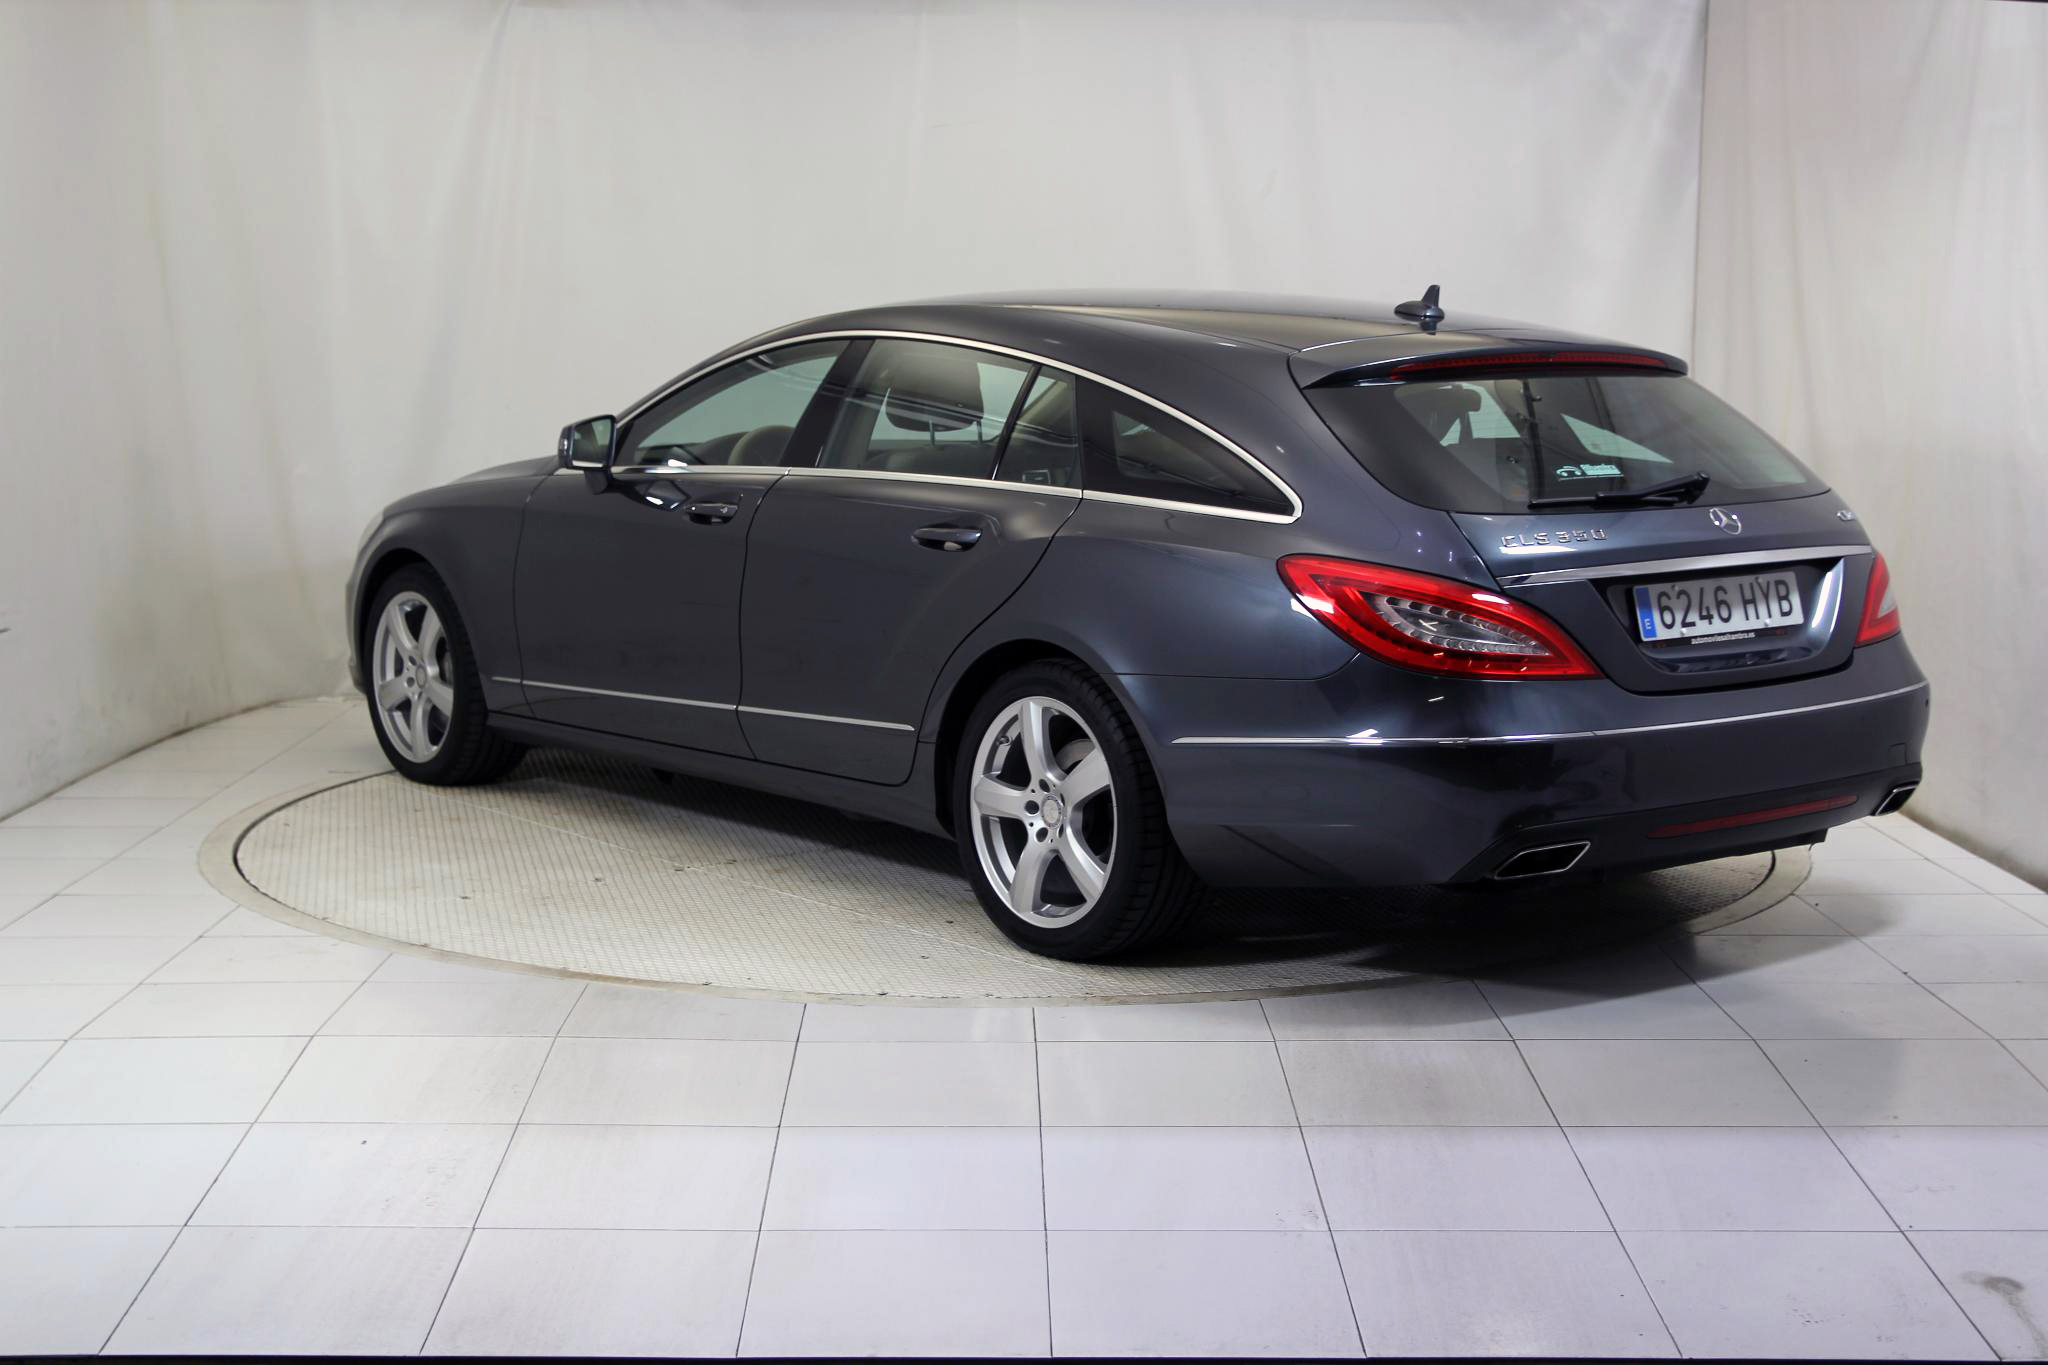 Mercedes-Benz Clase CLS CLS SHOOTING BRAKE 350 CDI AUTO imagen 8